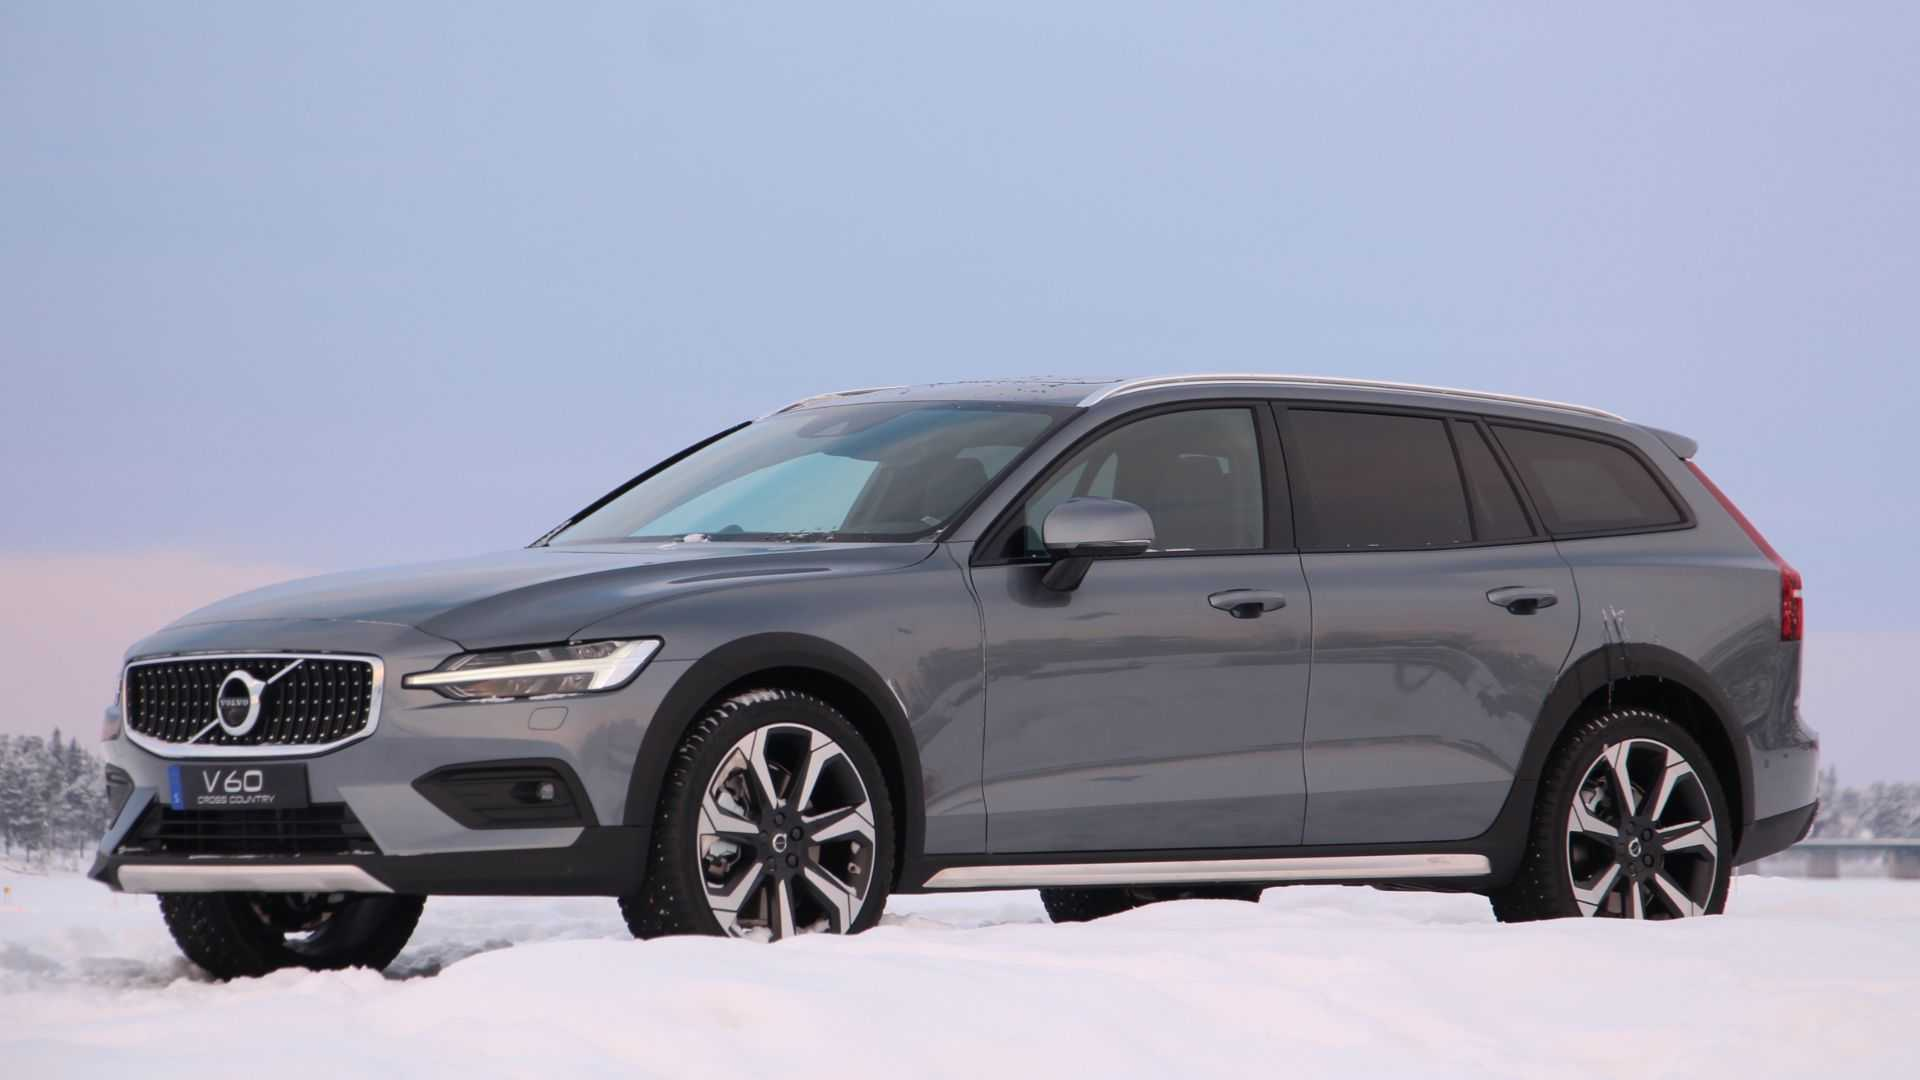 48 All New 2020 Volvo V60 Cross Country Price Design And Review